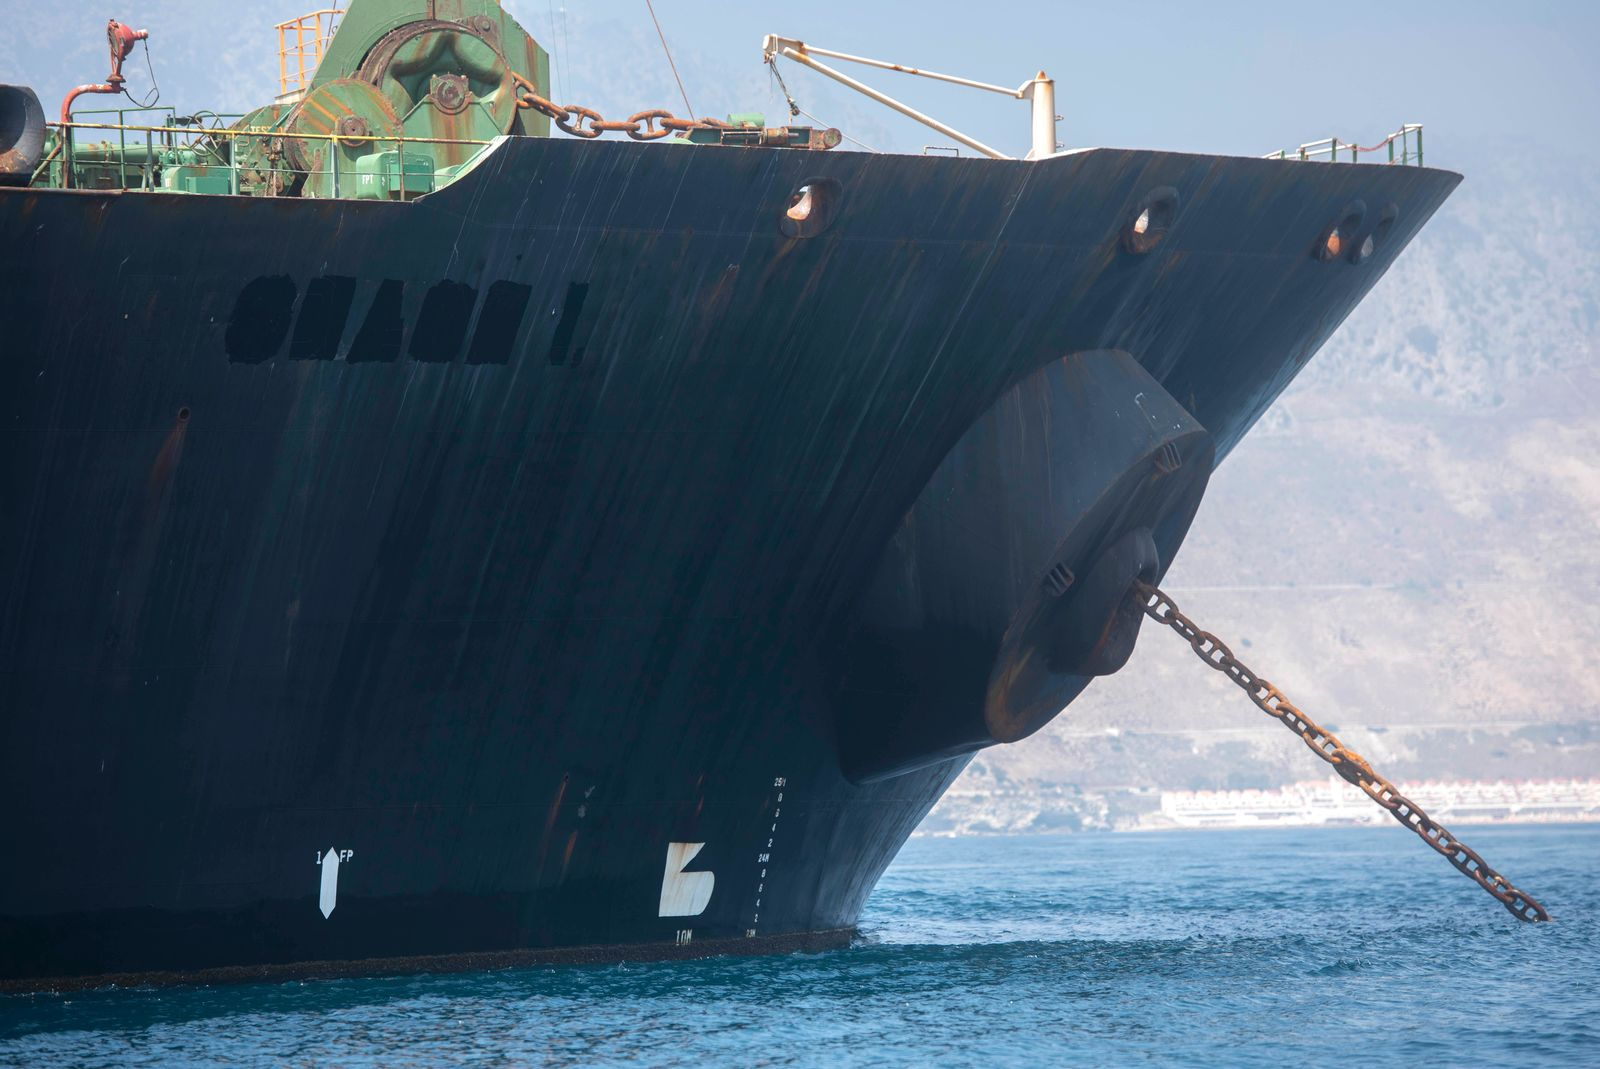 A view of the Grace 1 super tanker with the name removed is seen in the British territory of Gibraltar, Saturday, Aug. 17, 2019. (AP Photo/Marcos Moreno)